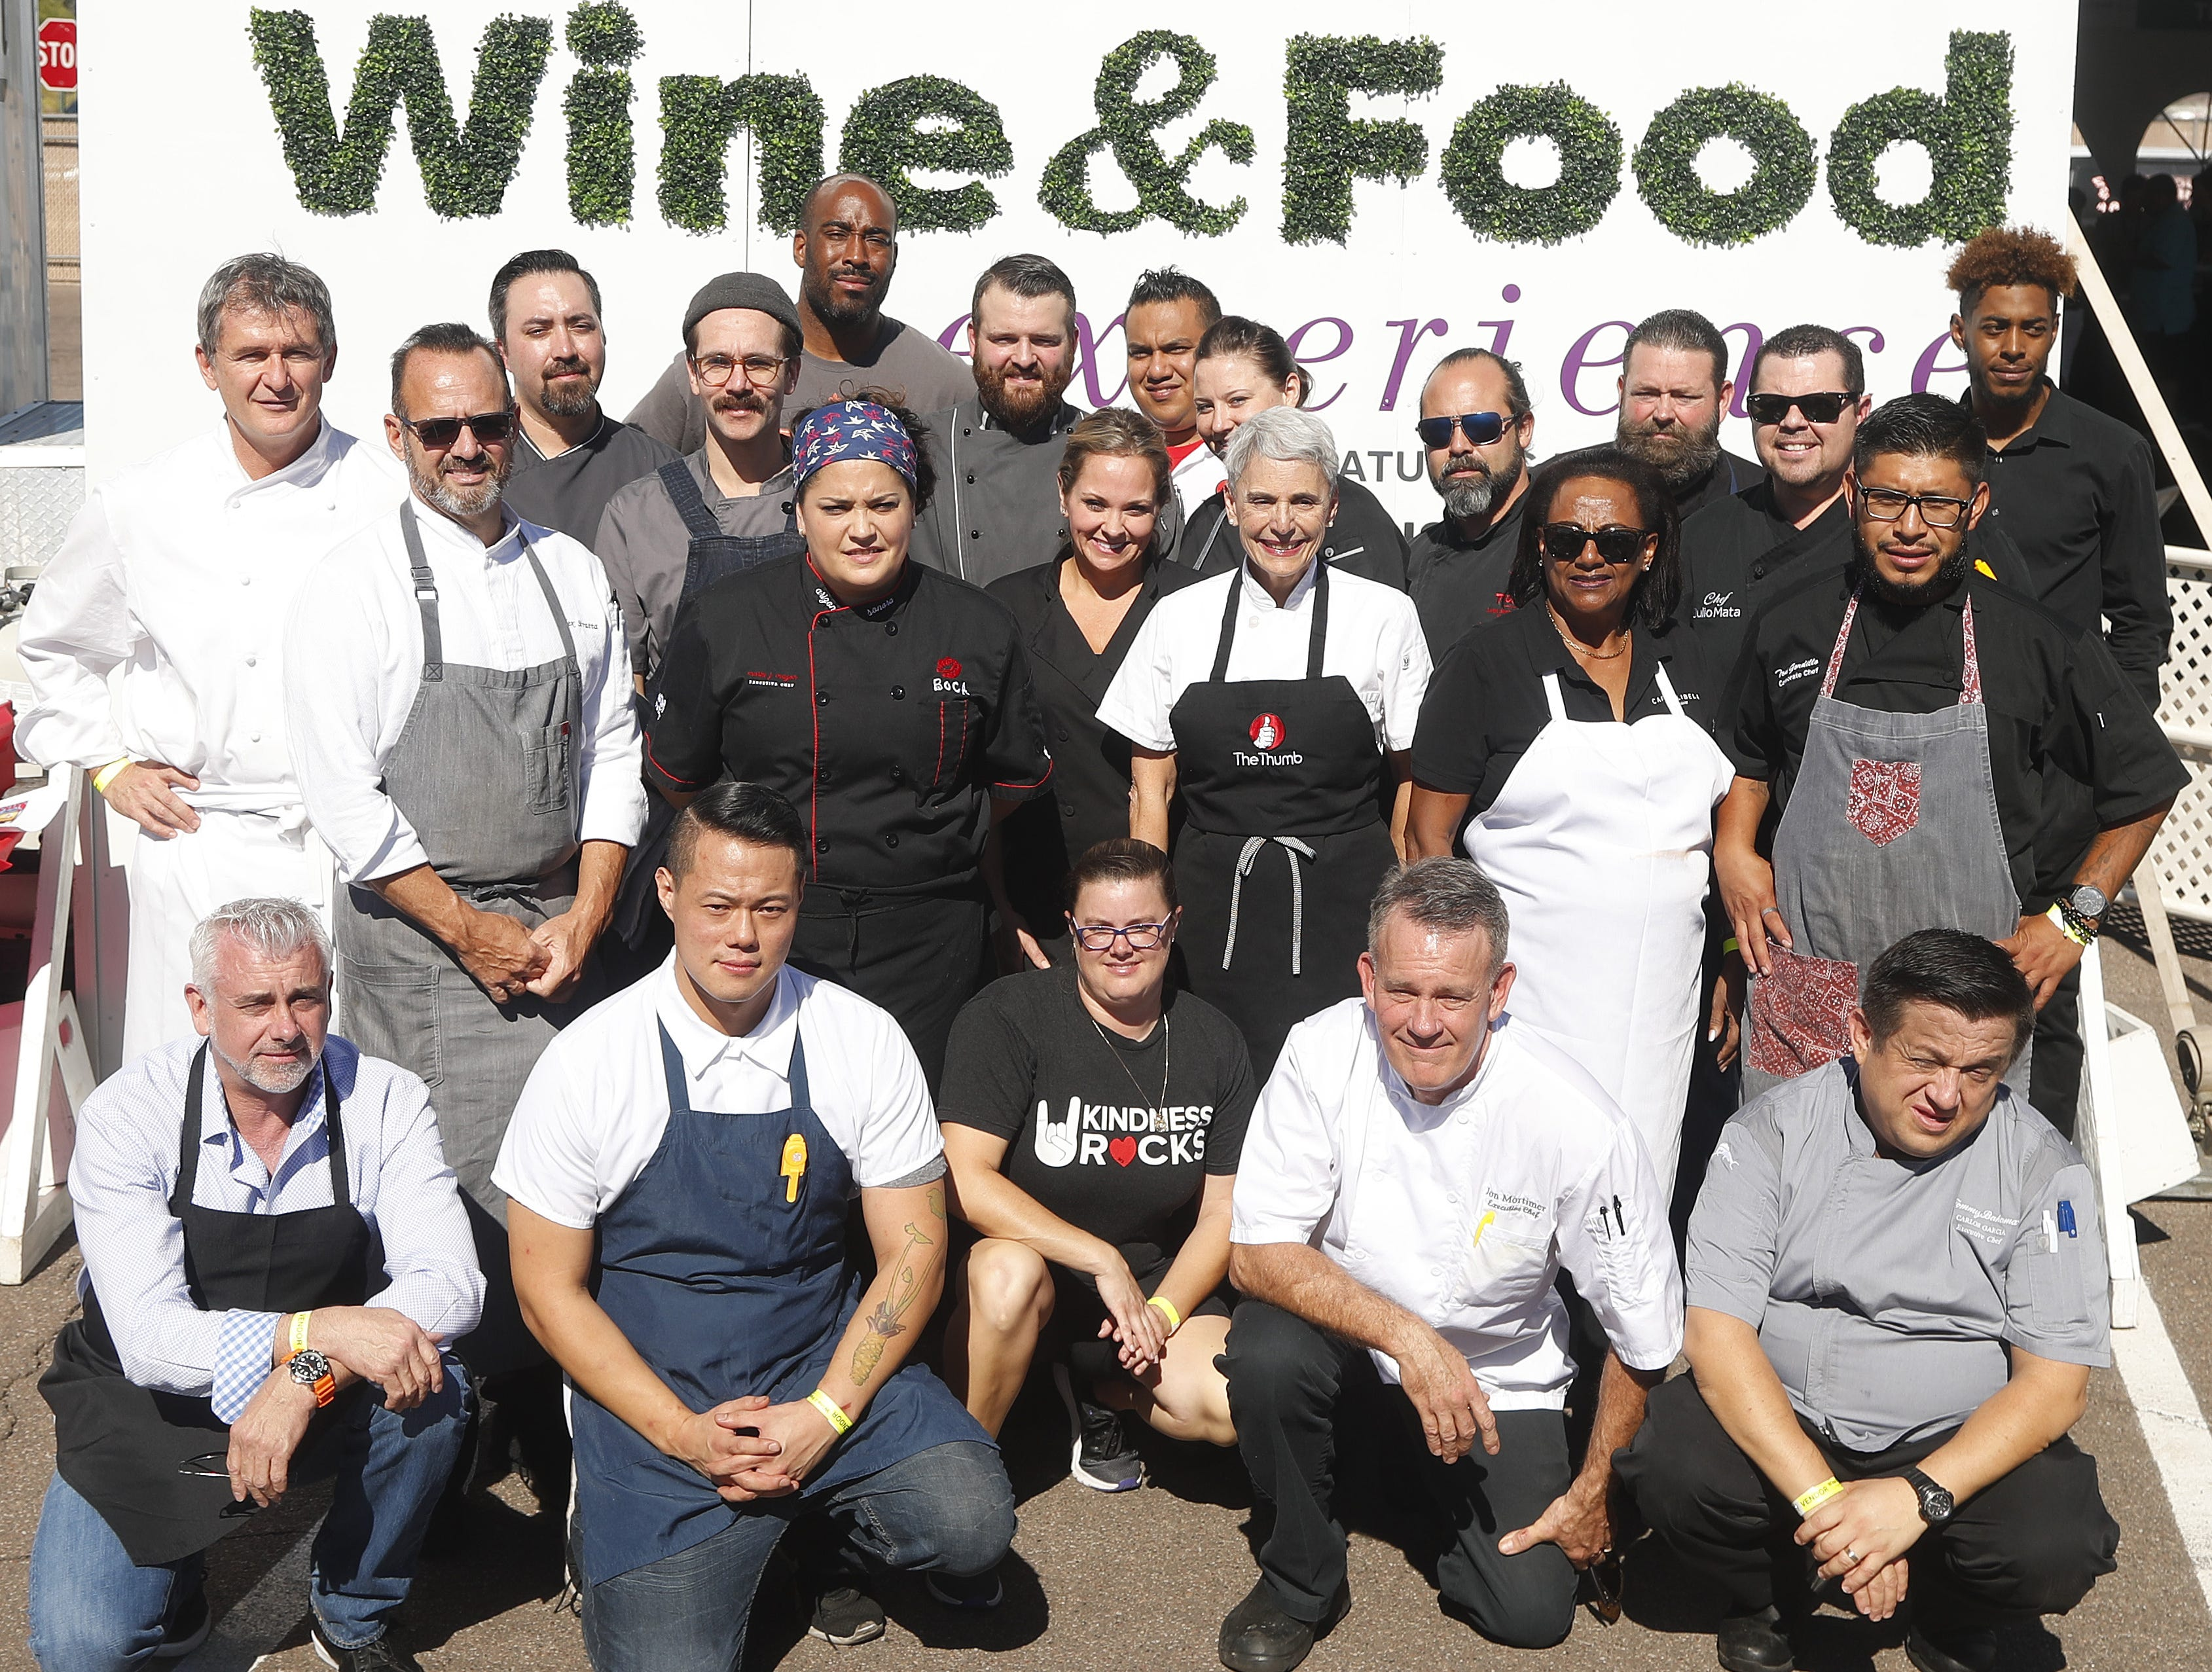 Chefs line up for a group photograph during the azcentral Wine & Food Experience at WestWorld of Scottsdale on Nov. 3, 2018.